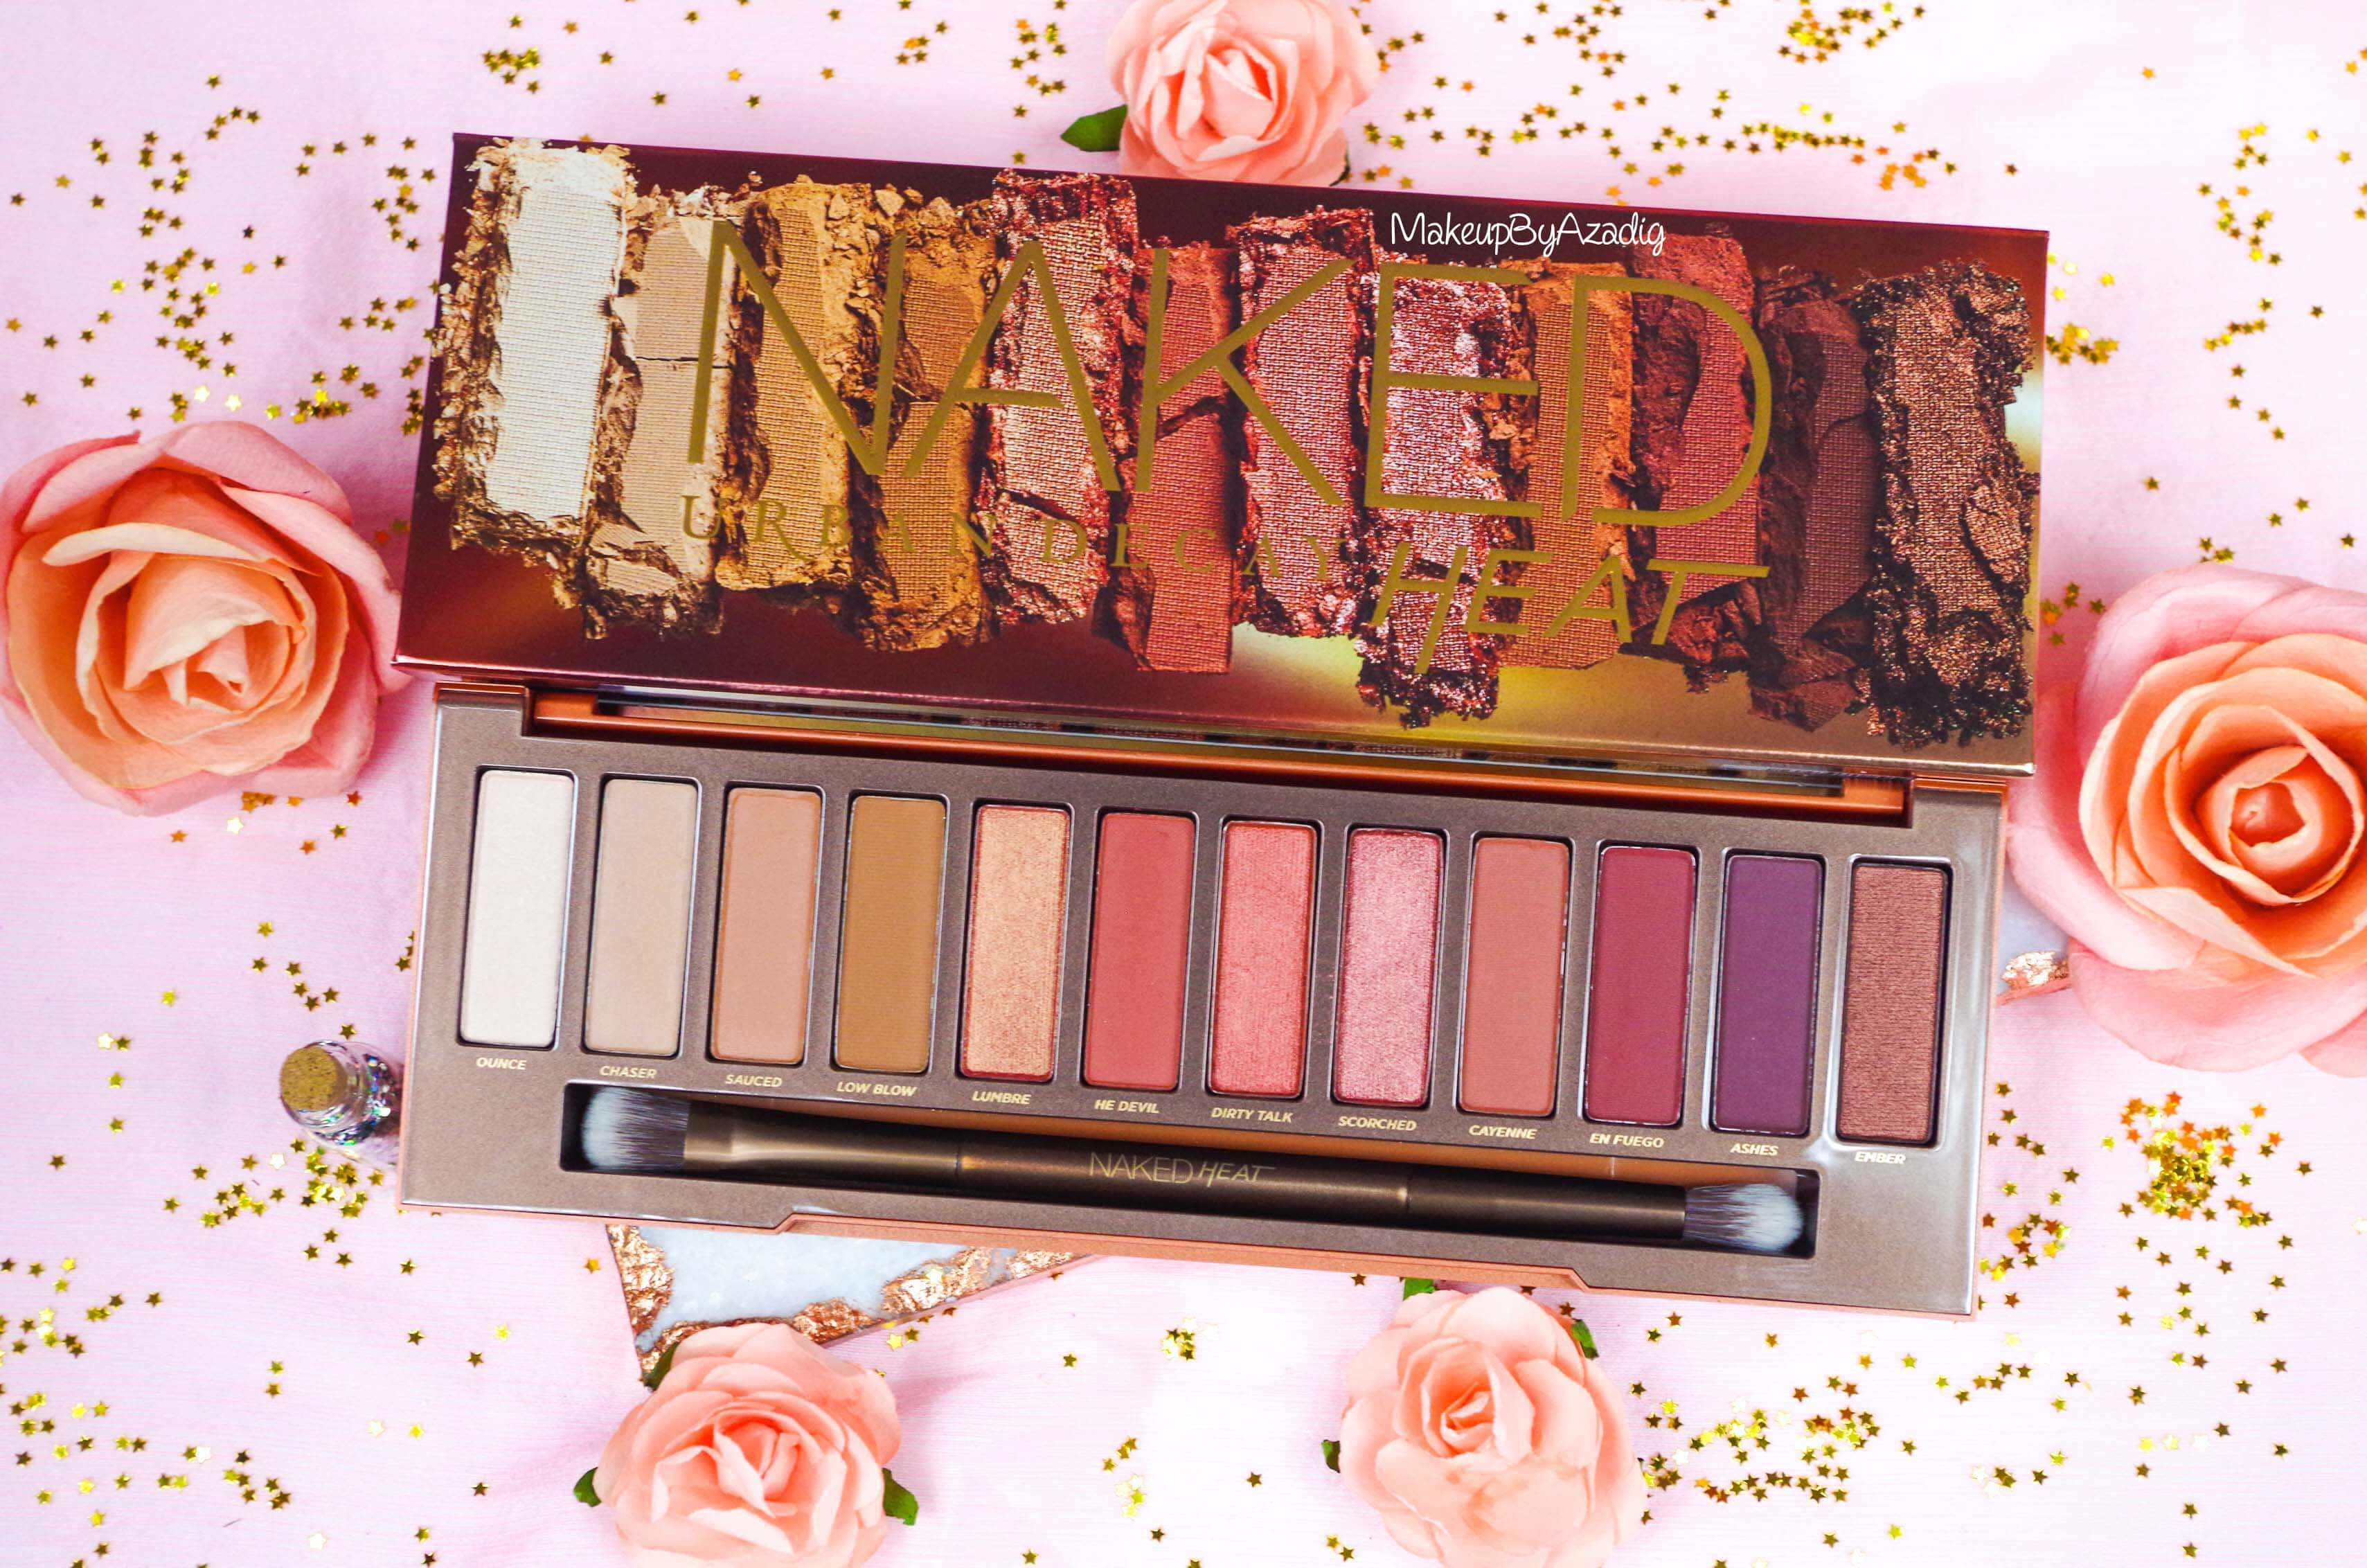 revue-review-nouvelle-palette-naked-heat-urban-decay-sephora-avis-prix-france-makeupbyazadig-swatch-eyeshadows